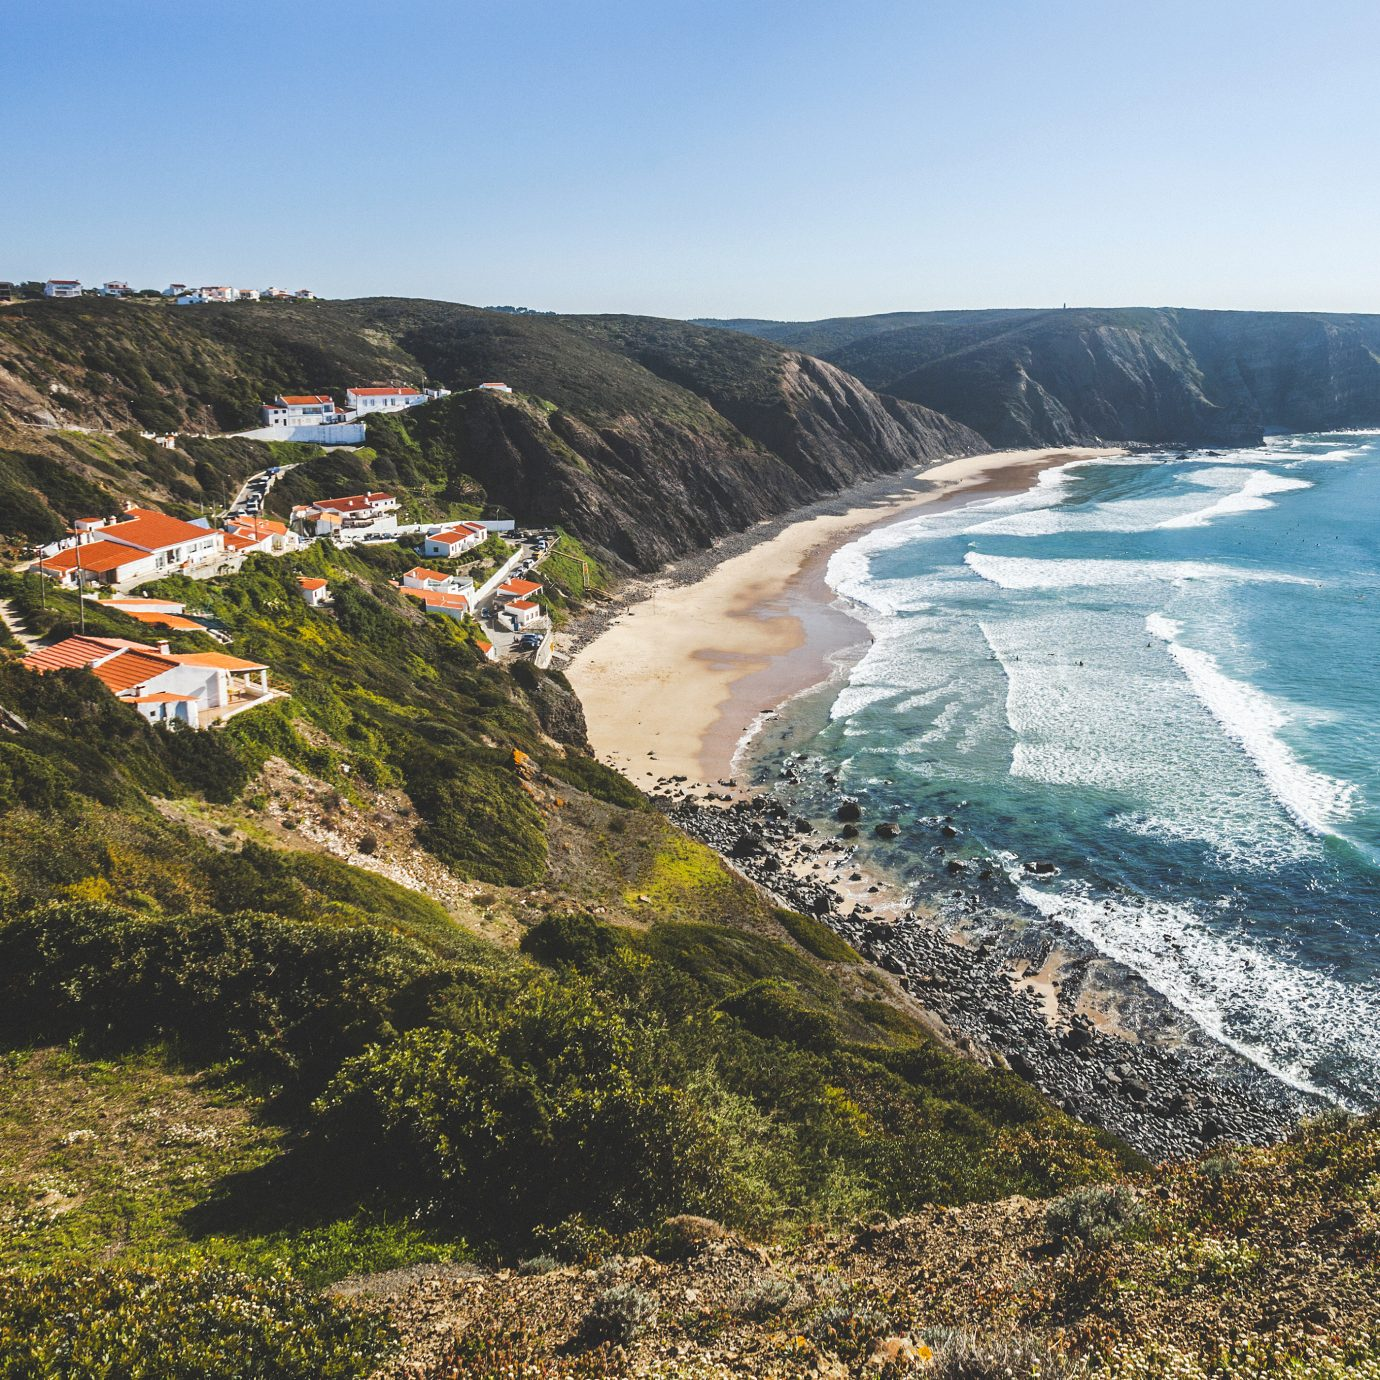 View from top of the hill to Arrifana beach, popular among surfers.